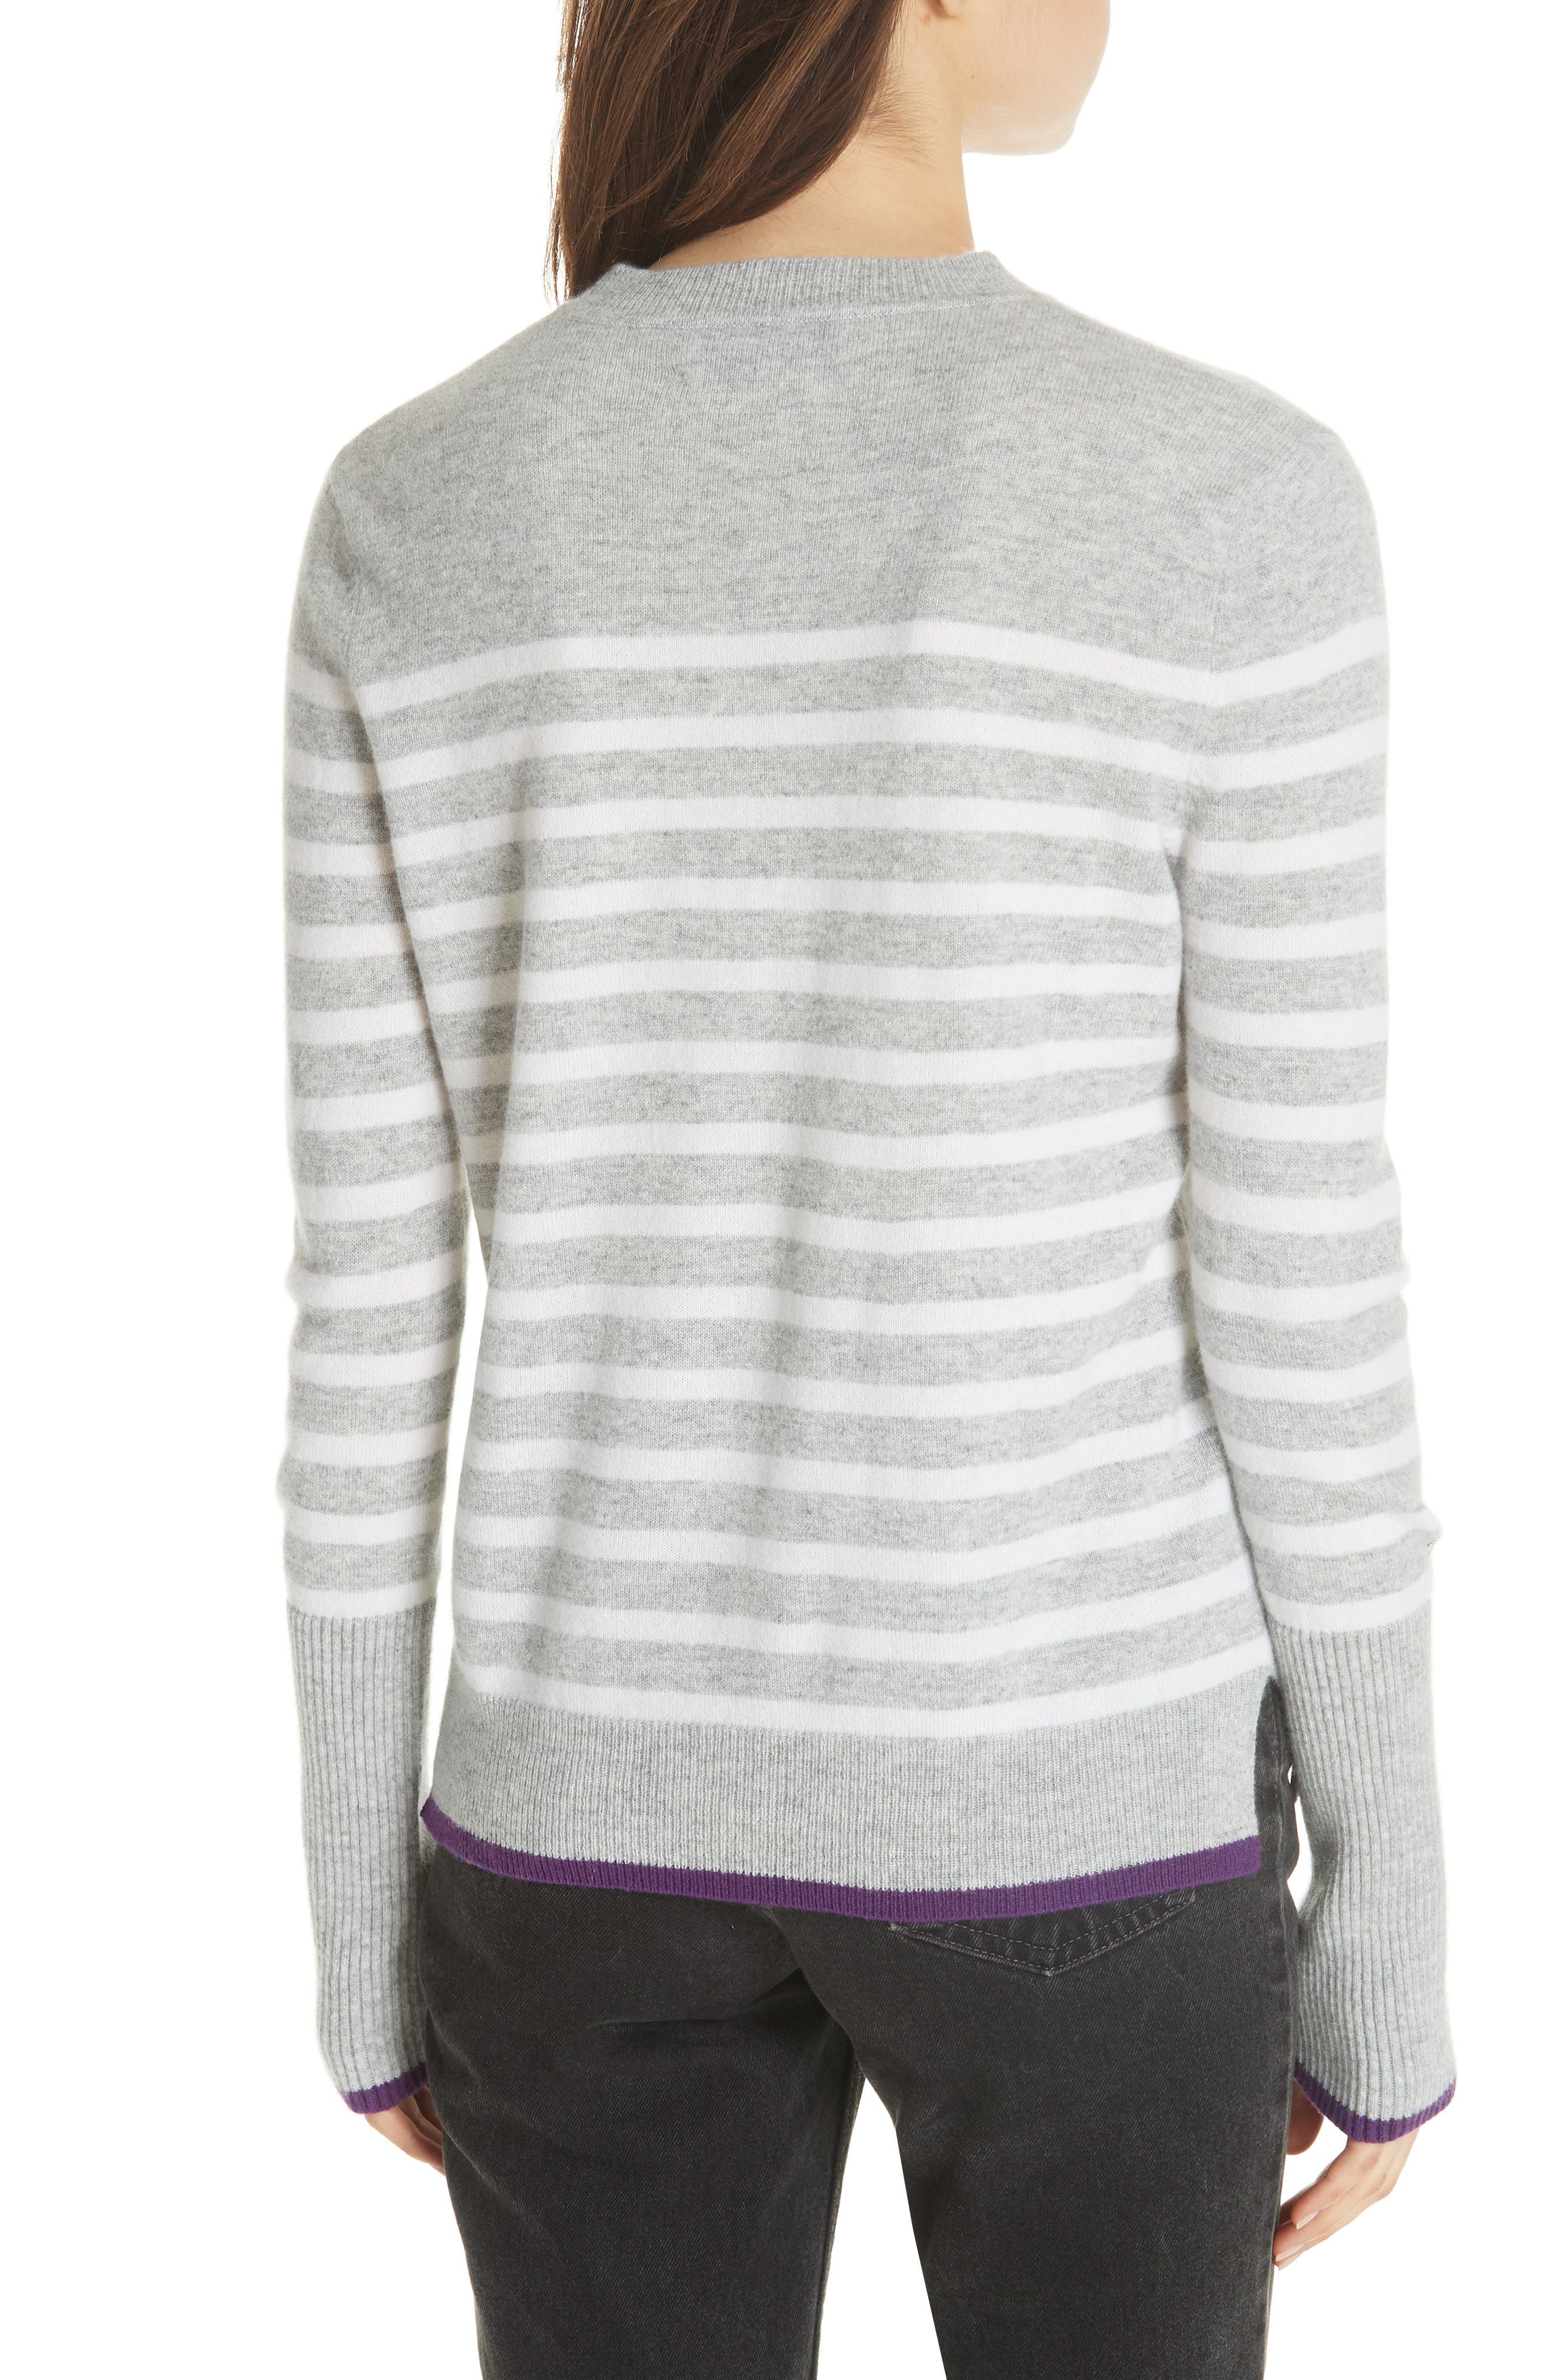 AAA Lean Lines Cashmere Sweater,                             Alternate thumbnail 2, color,                             GREY MARLE/ CREAM/ PURPLE